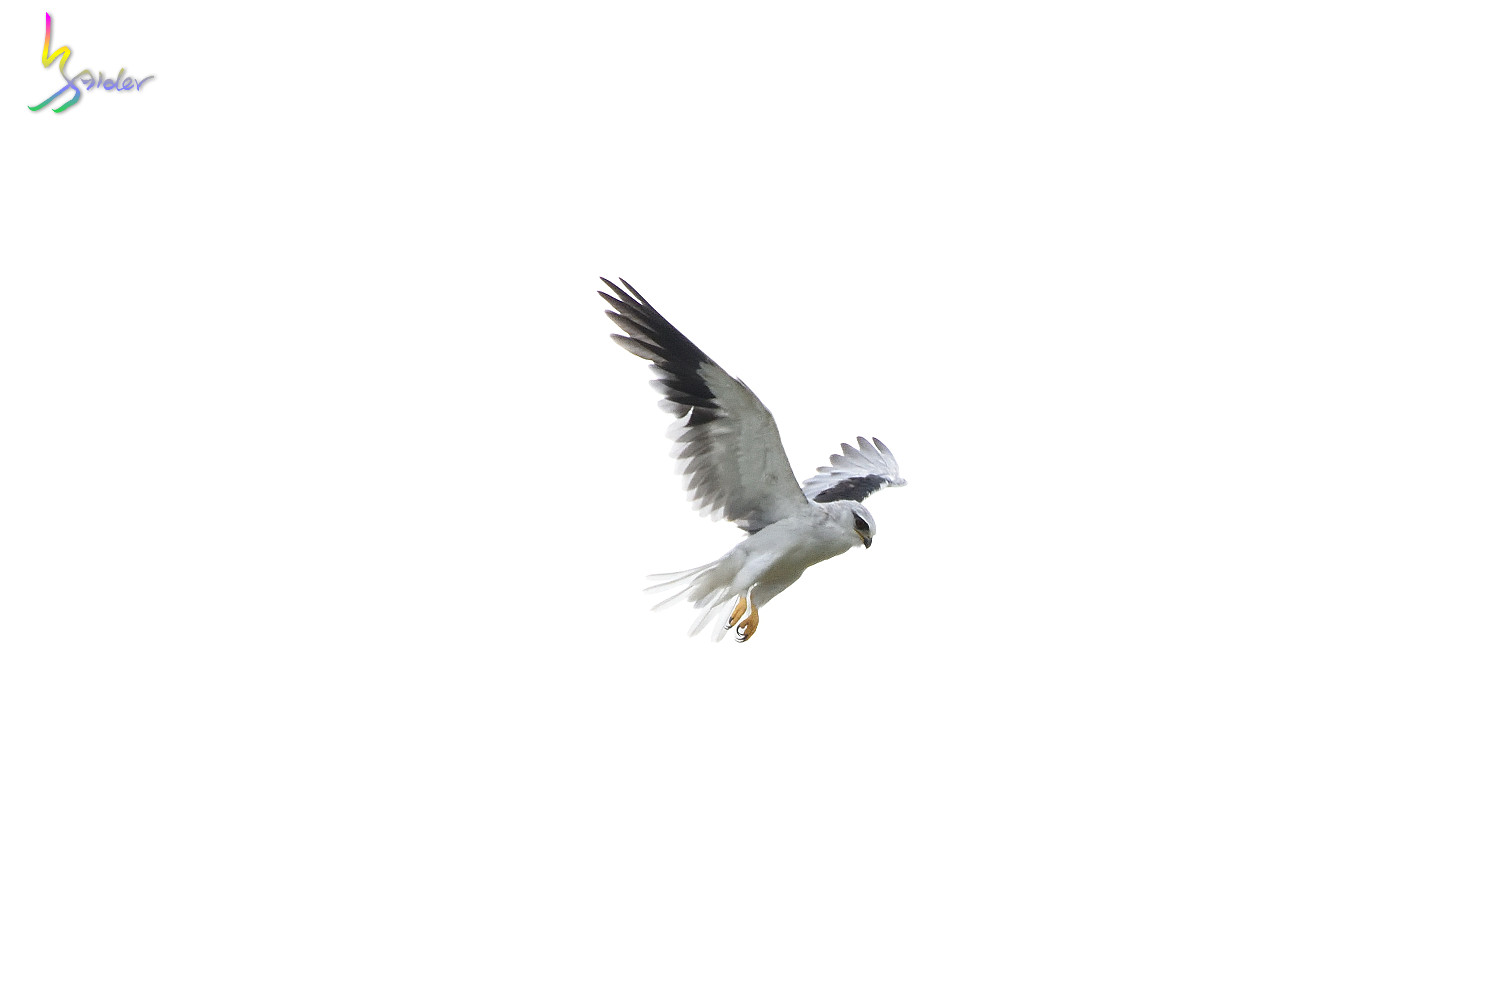 Black-winged_kite_5682